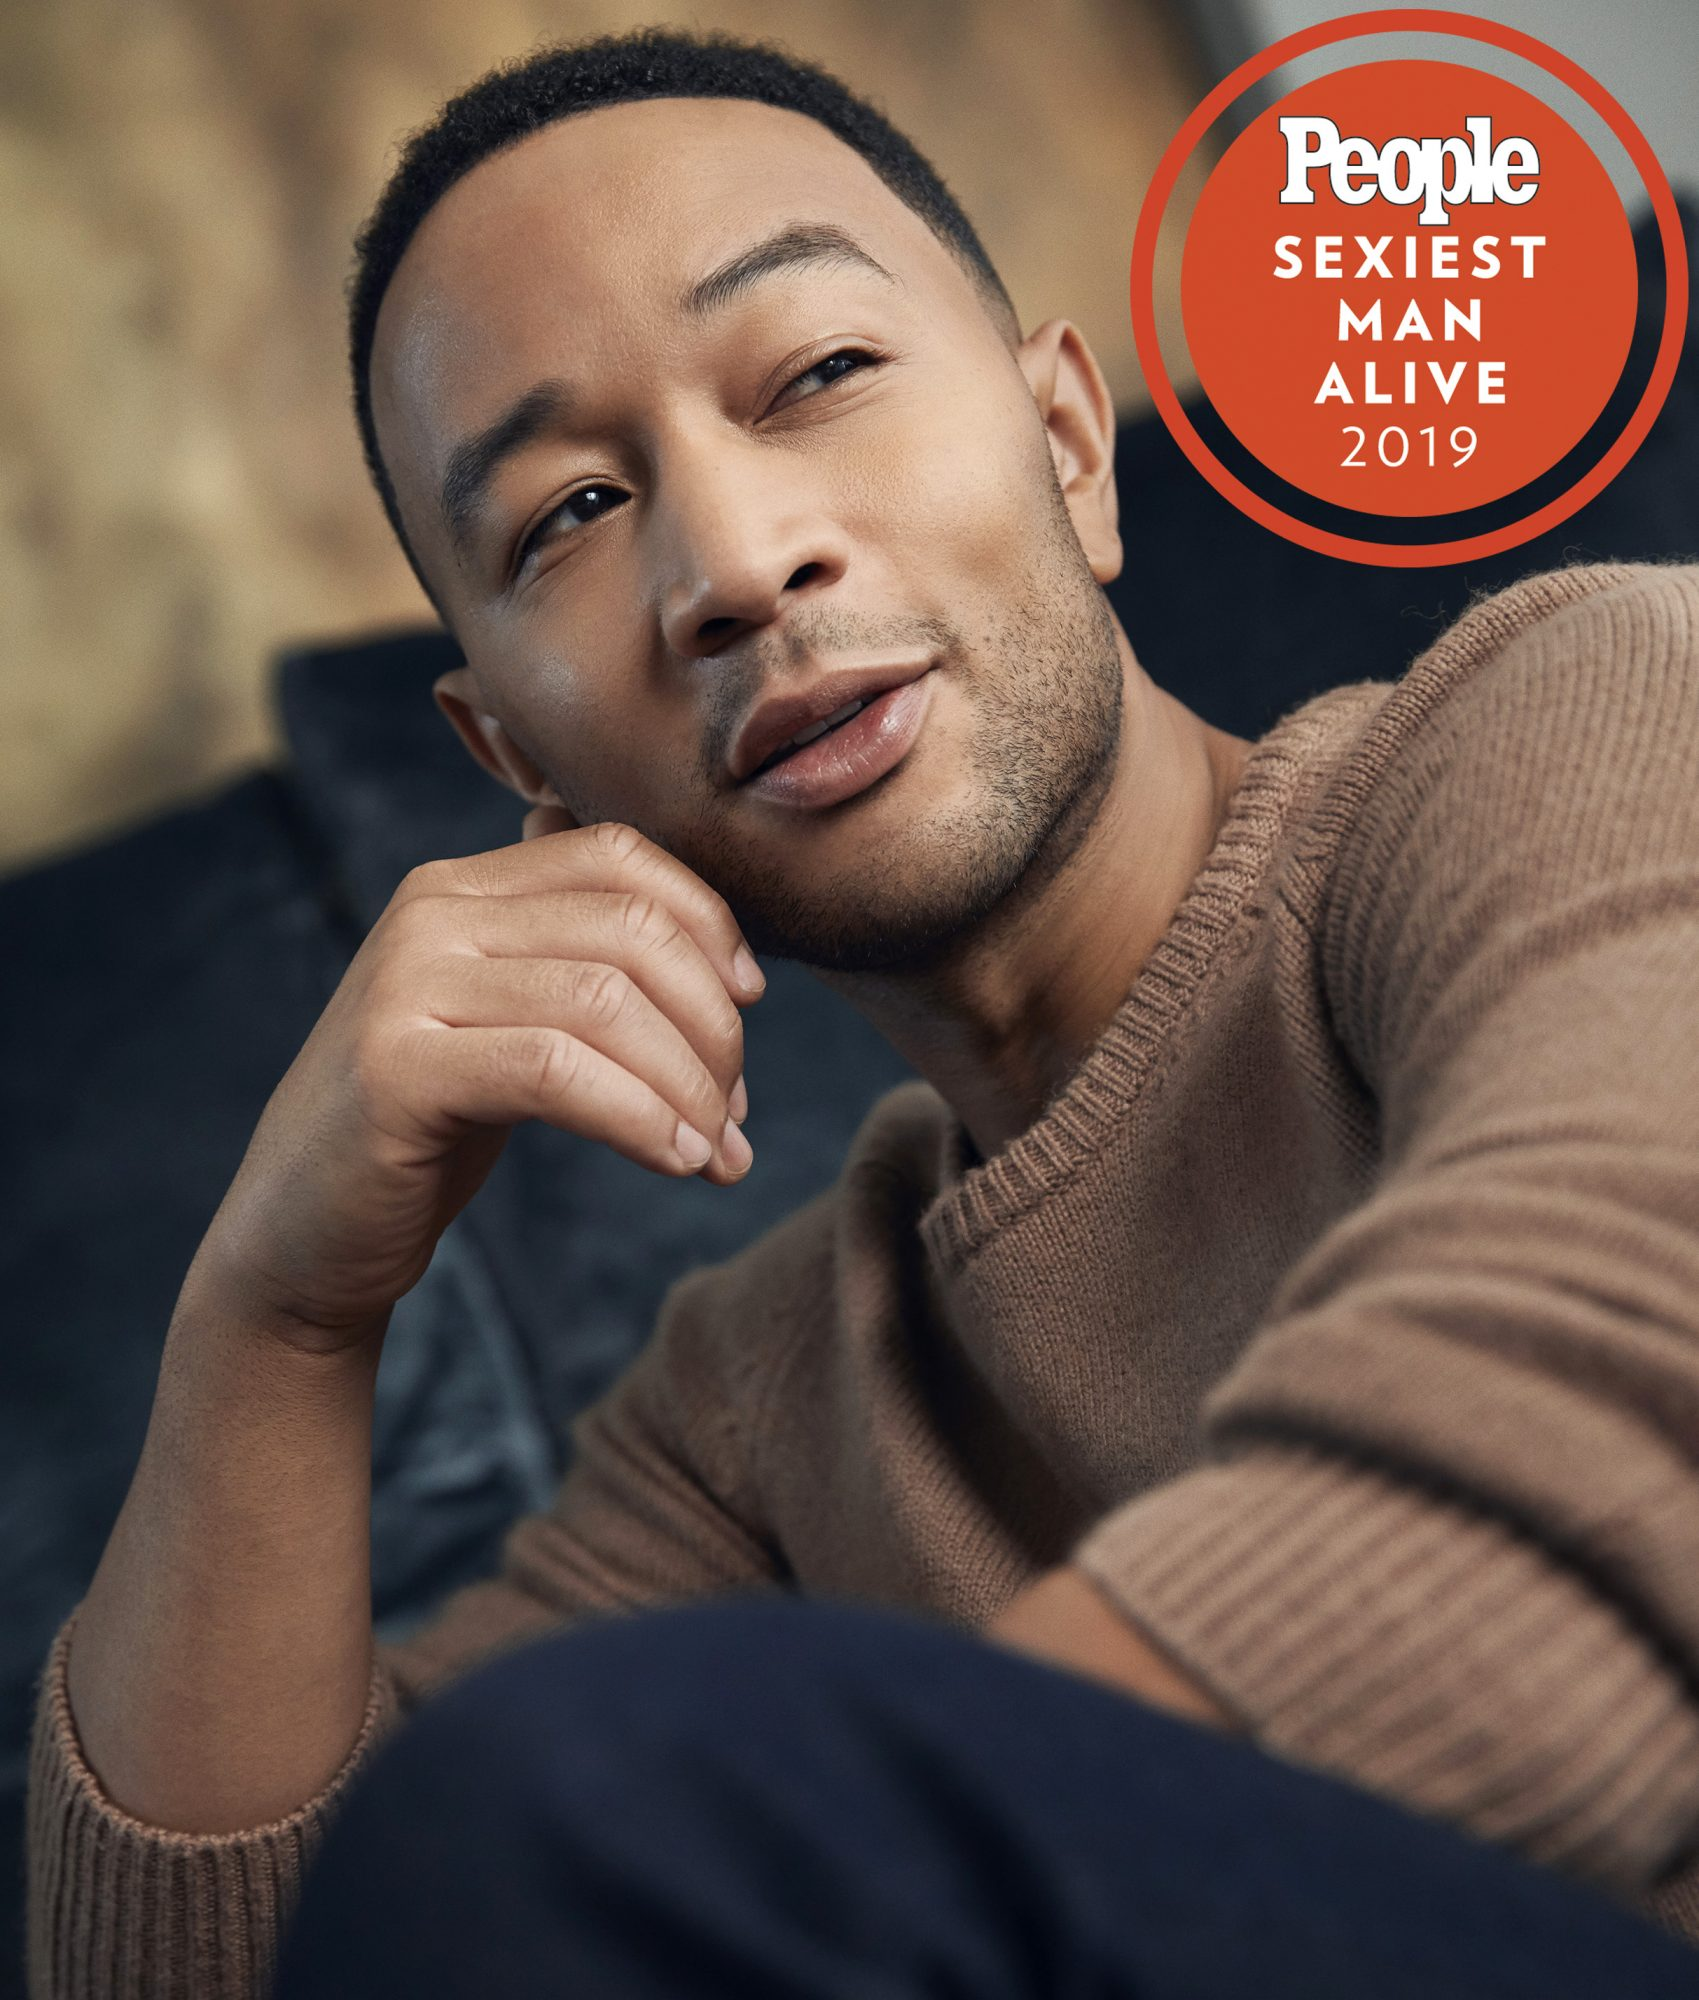 John legend in a tan sweater